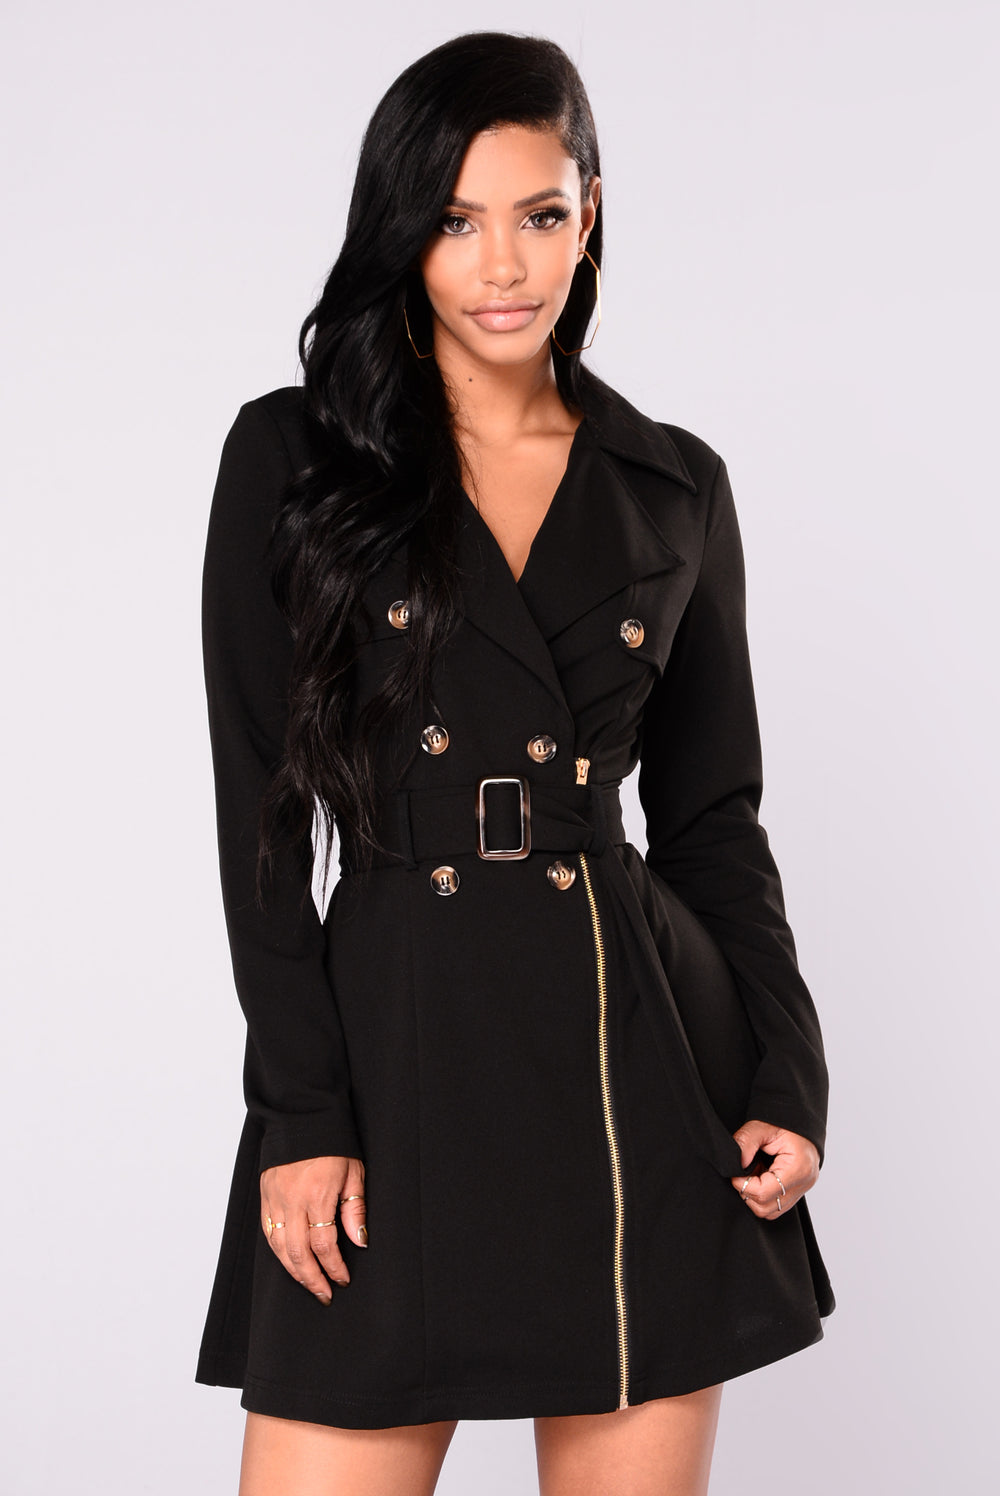 Ways To Go Trench Coat - Black